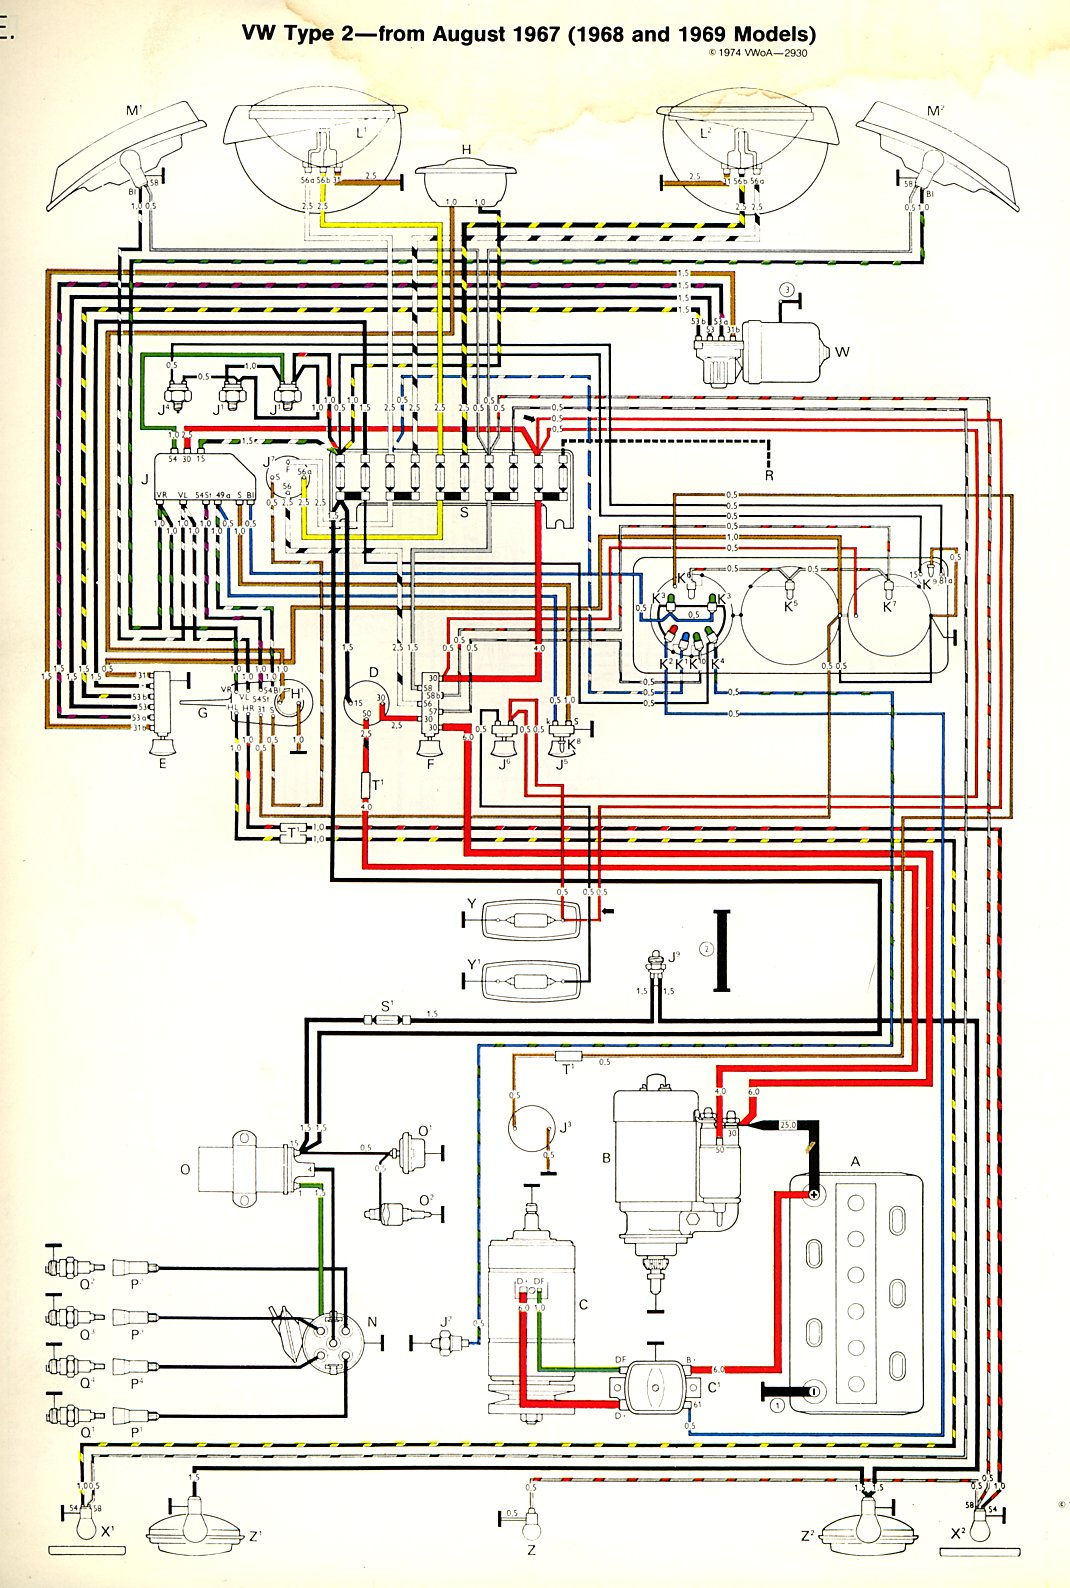 1977 lincoln wiring diagram thesamba.com :: bay window bus - view topic - 69 ...